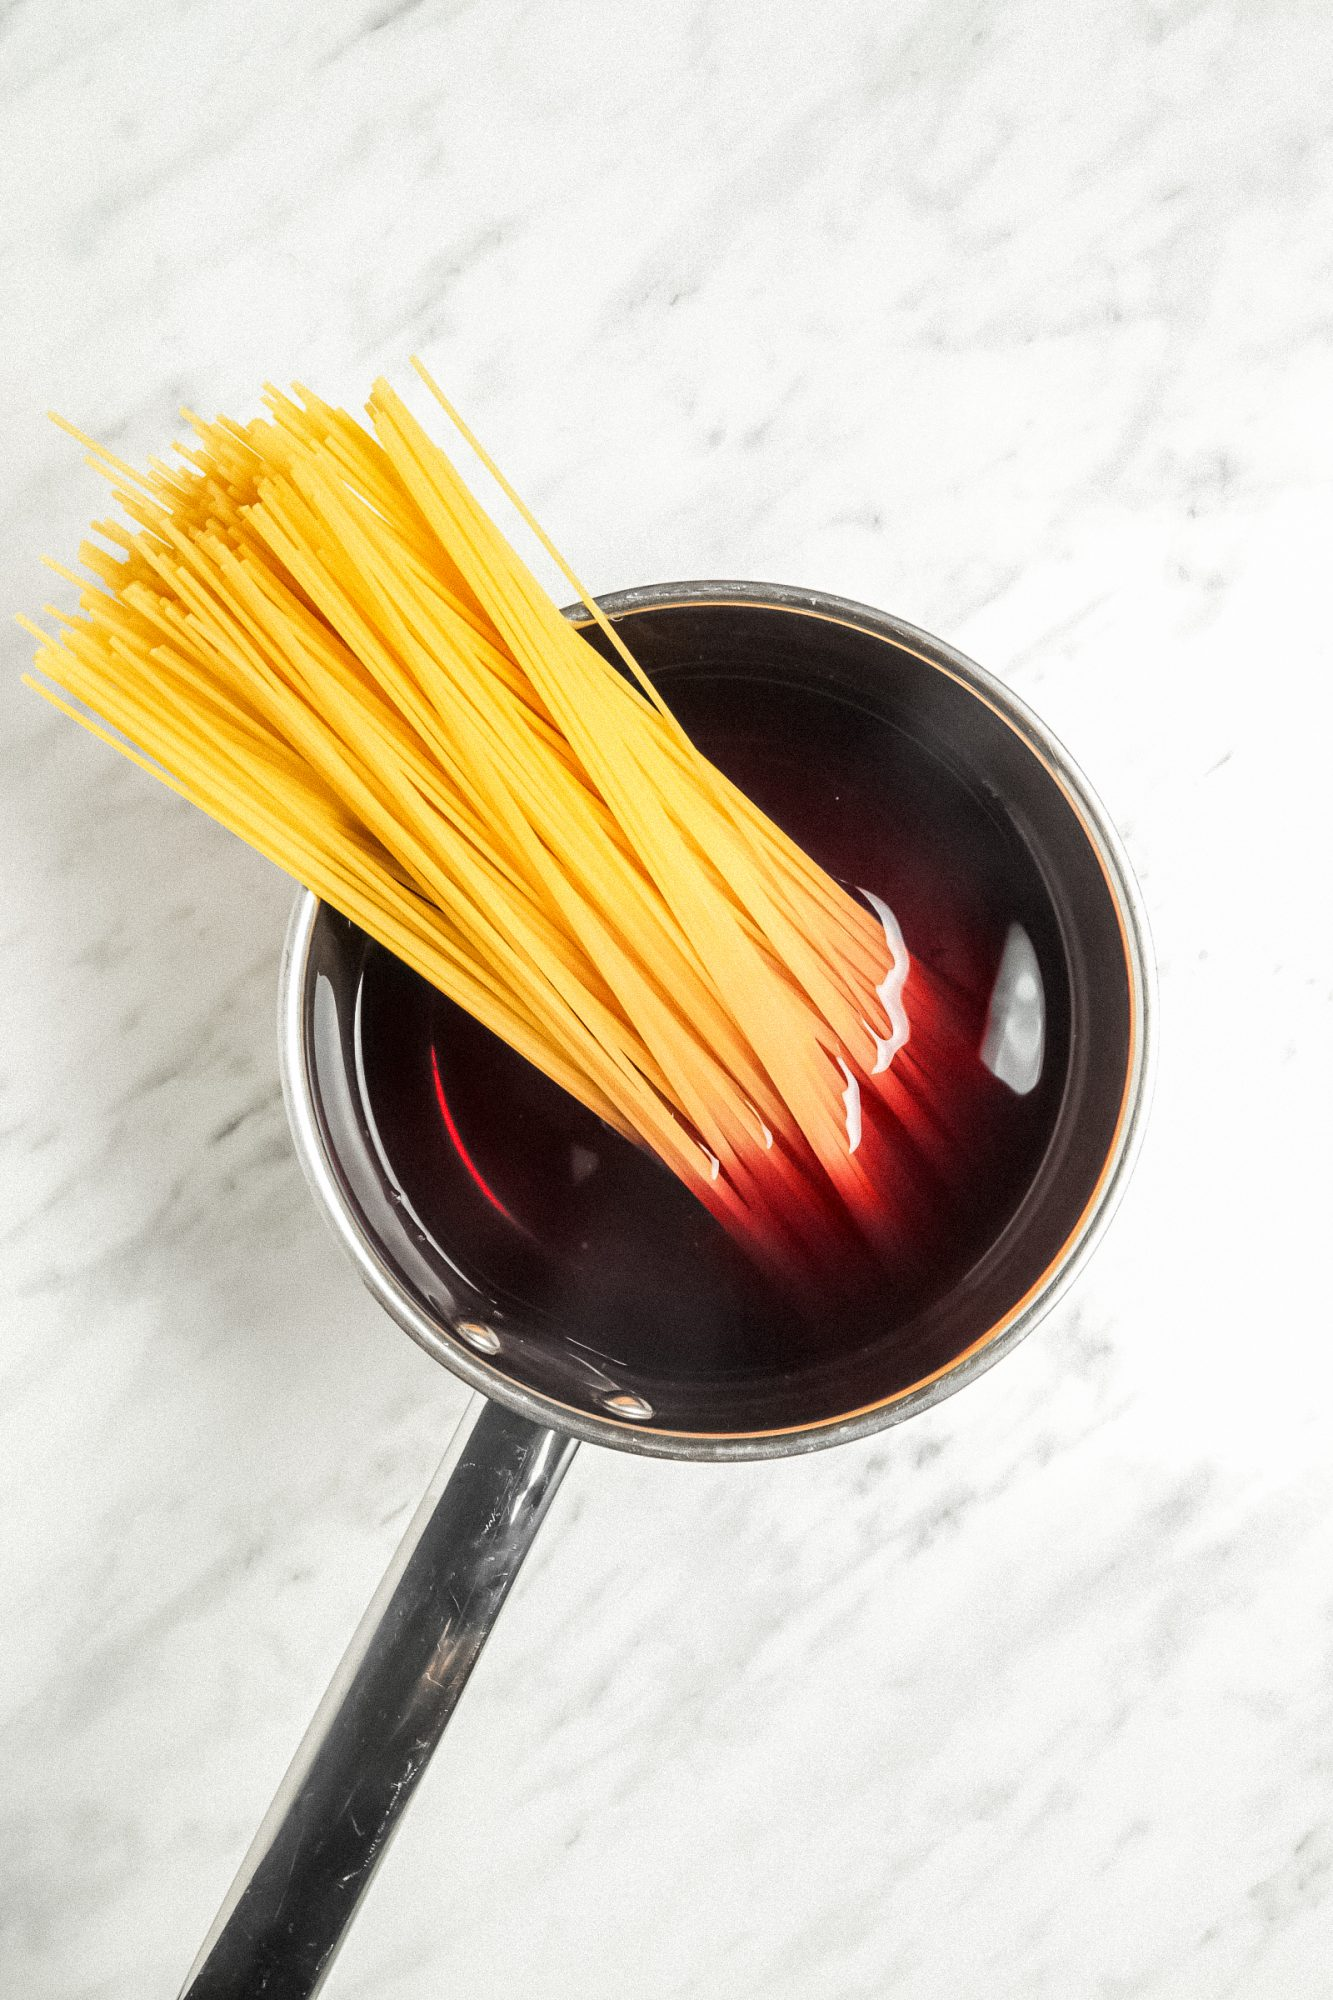 Pasta boiled in red wine